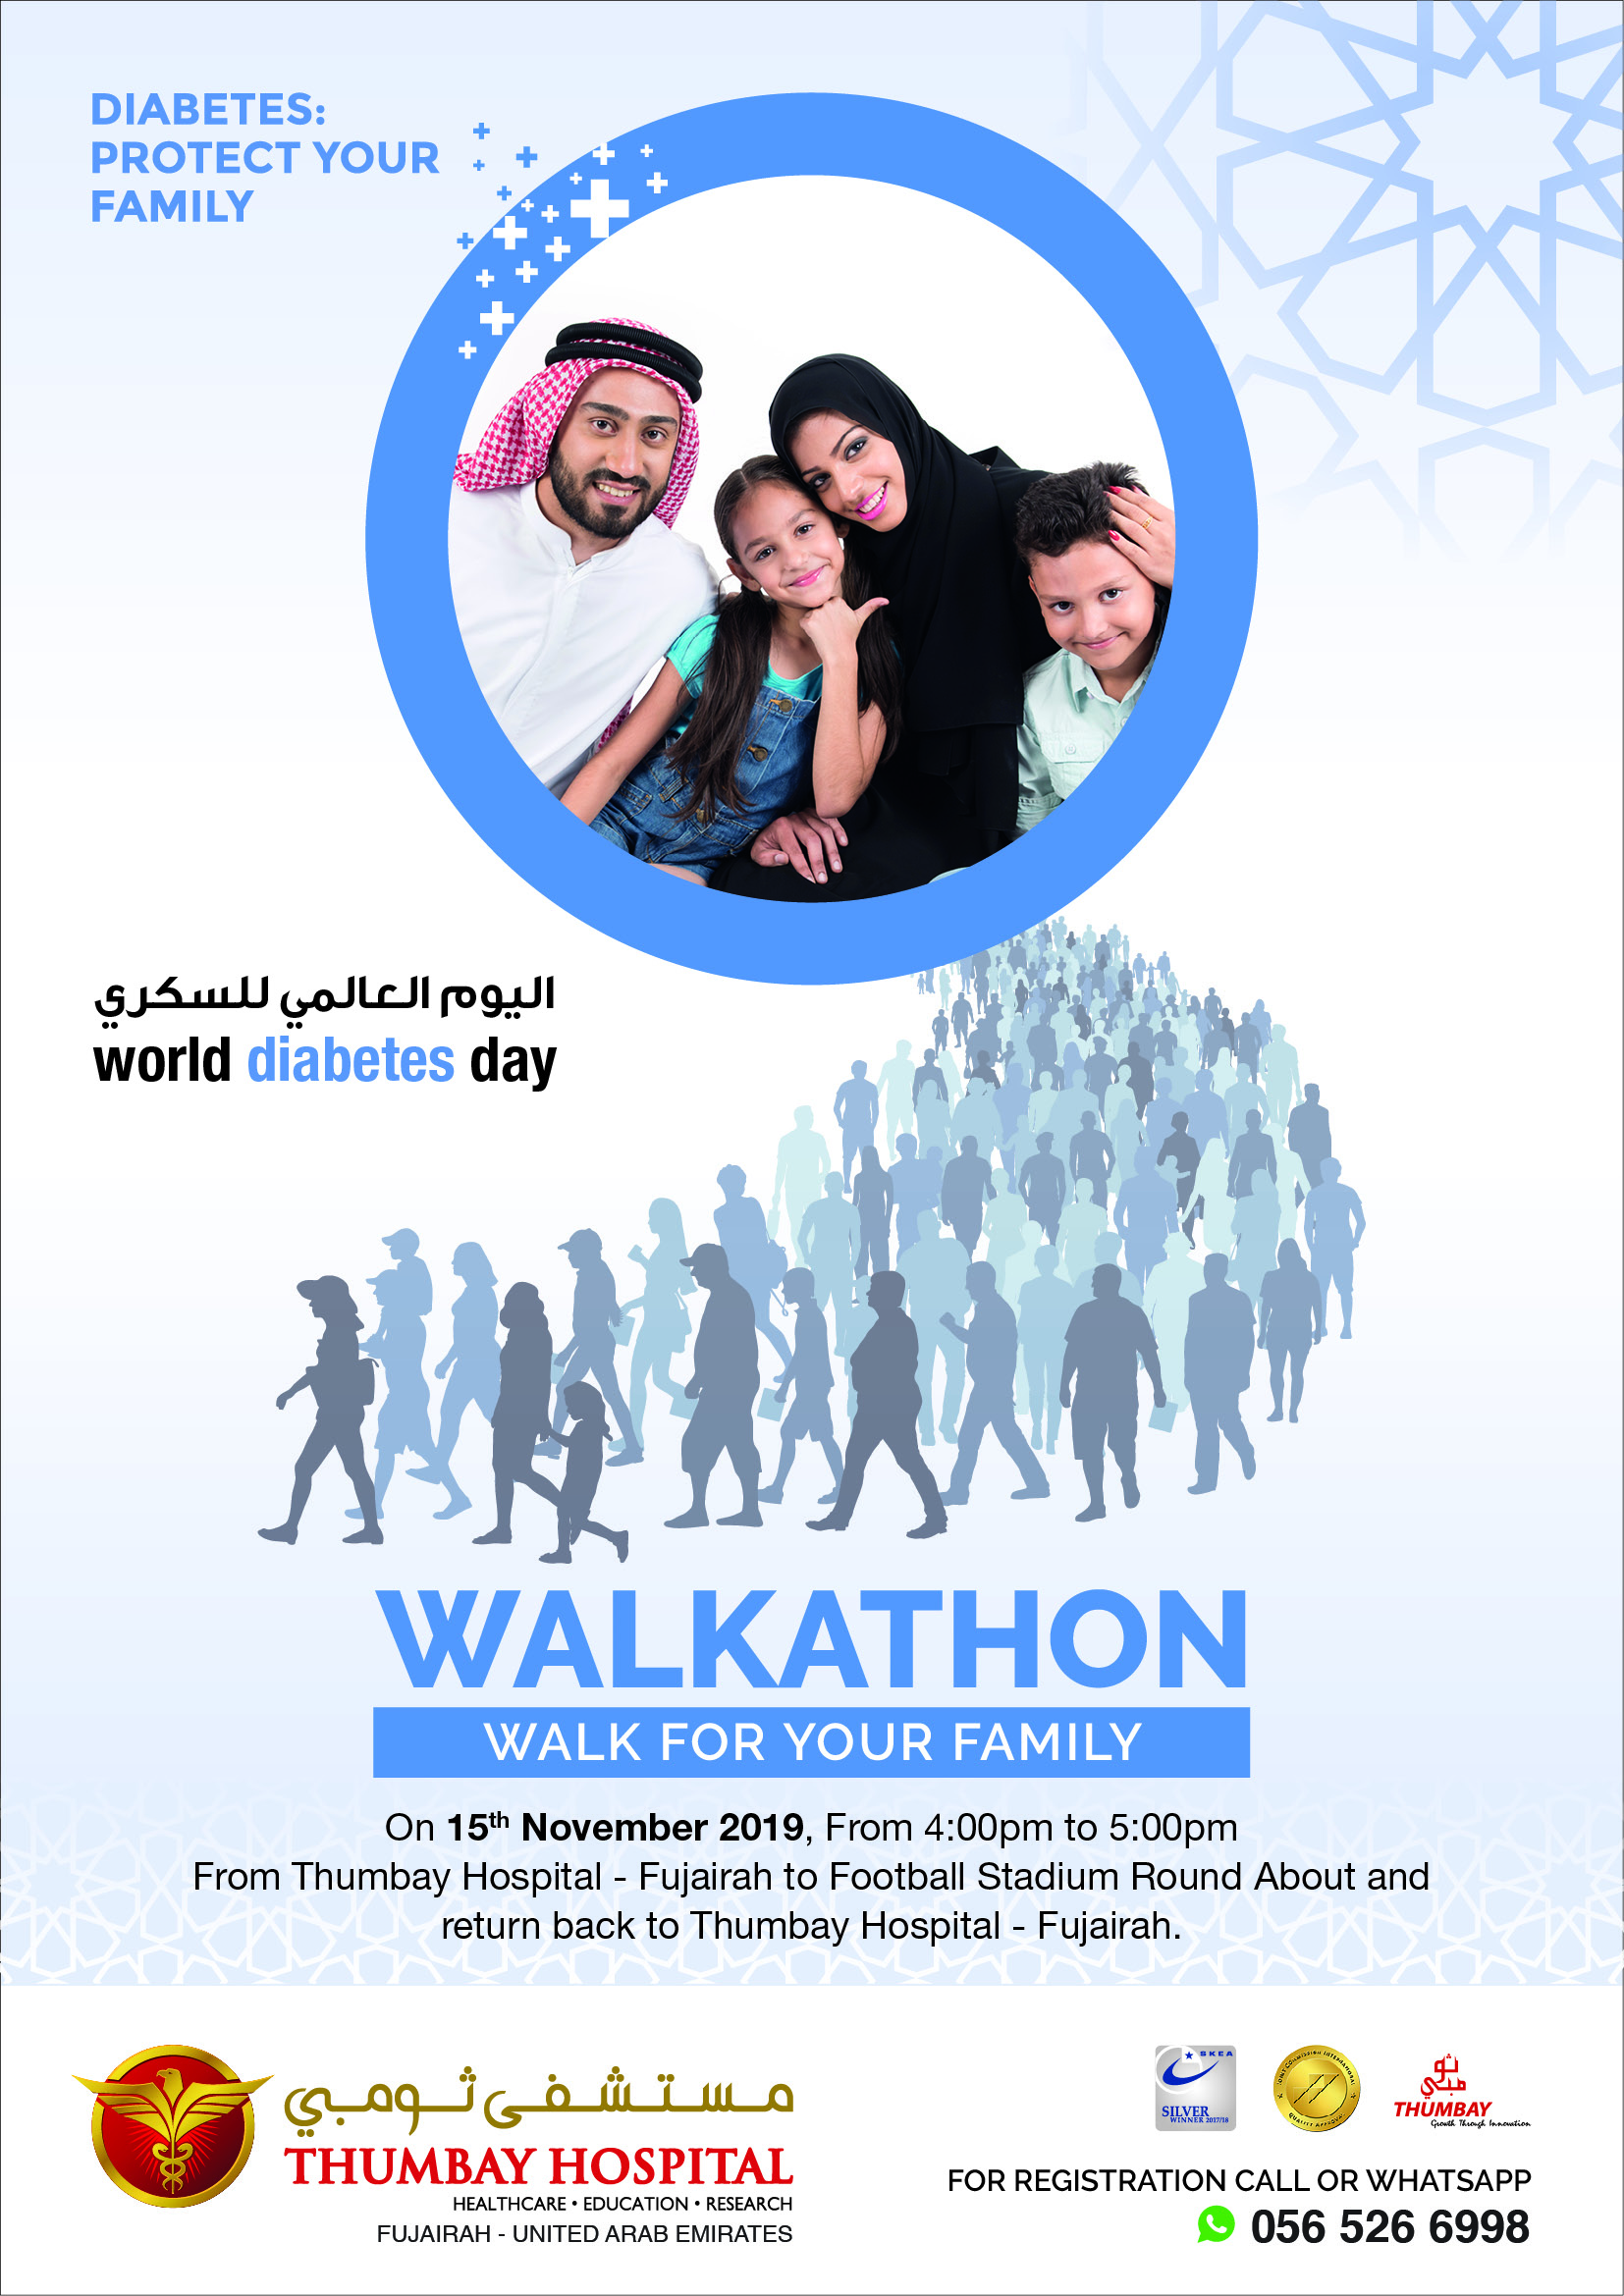 On World Diabetes Day Thumbay Hospital – Fujairah, will launch a diabetes awareness campaign